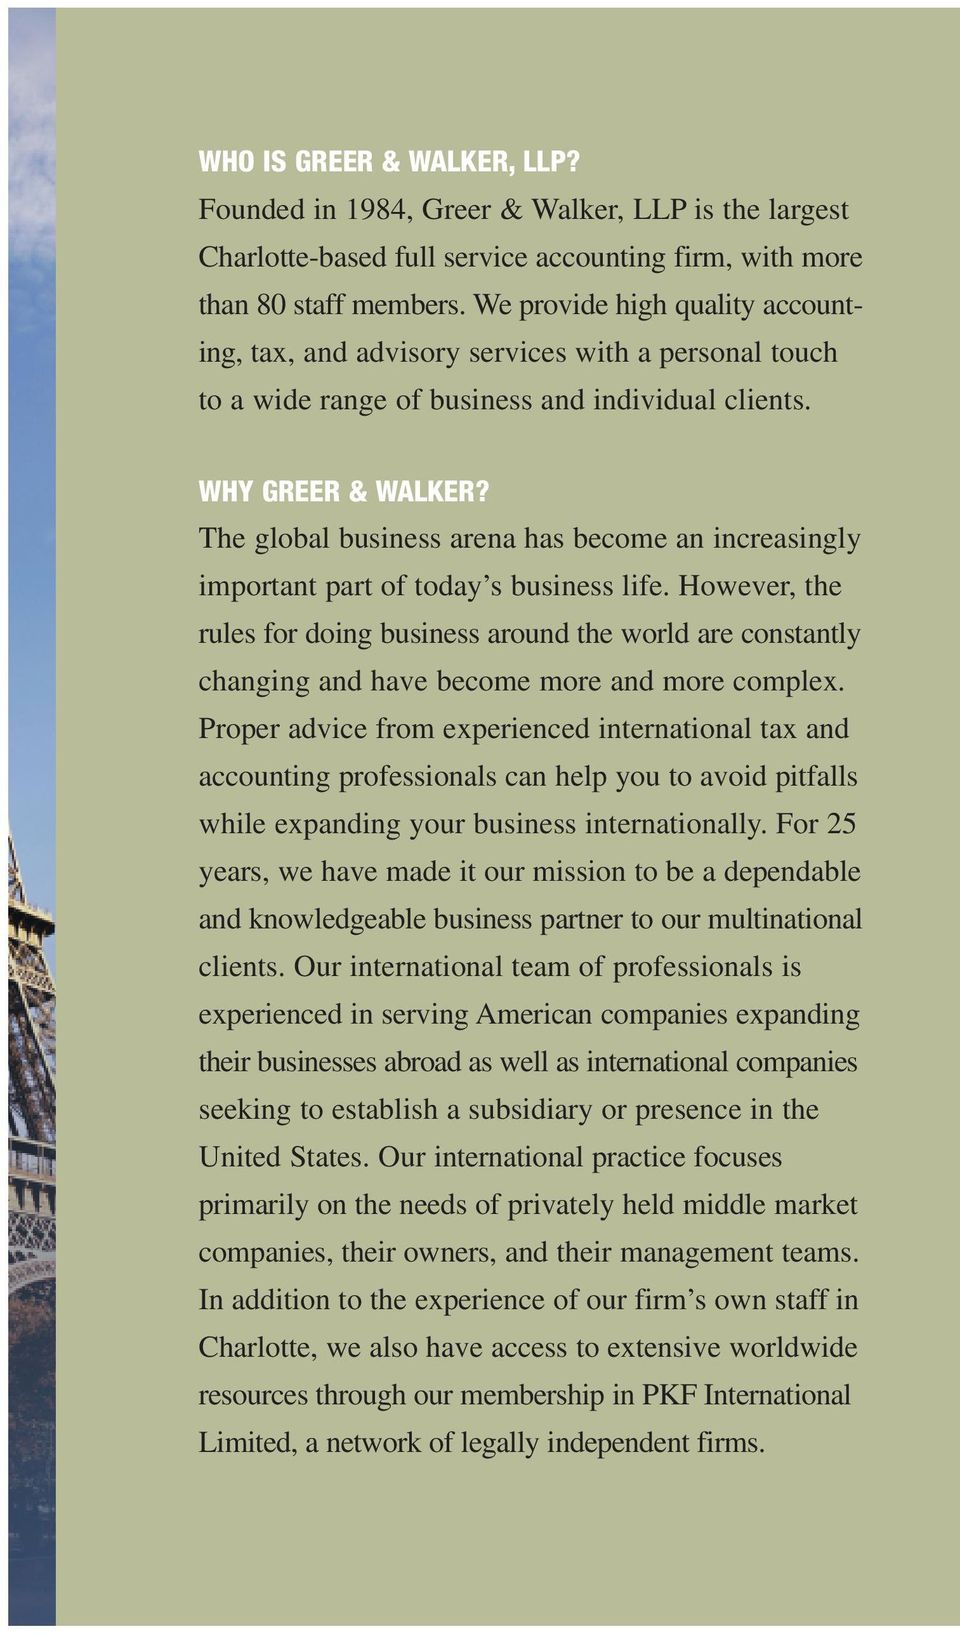 The global business arena has become an increasingly important part of today s business life.